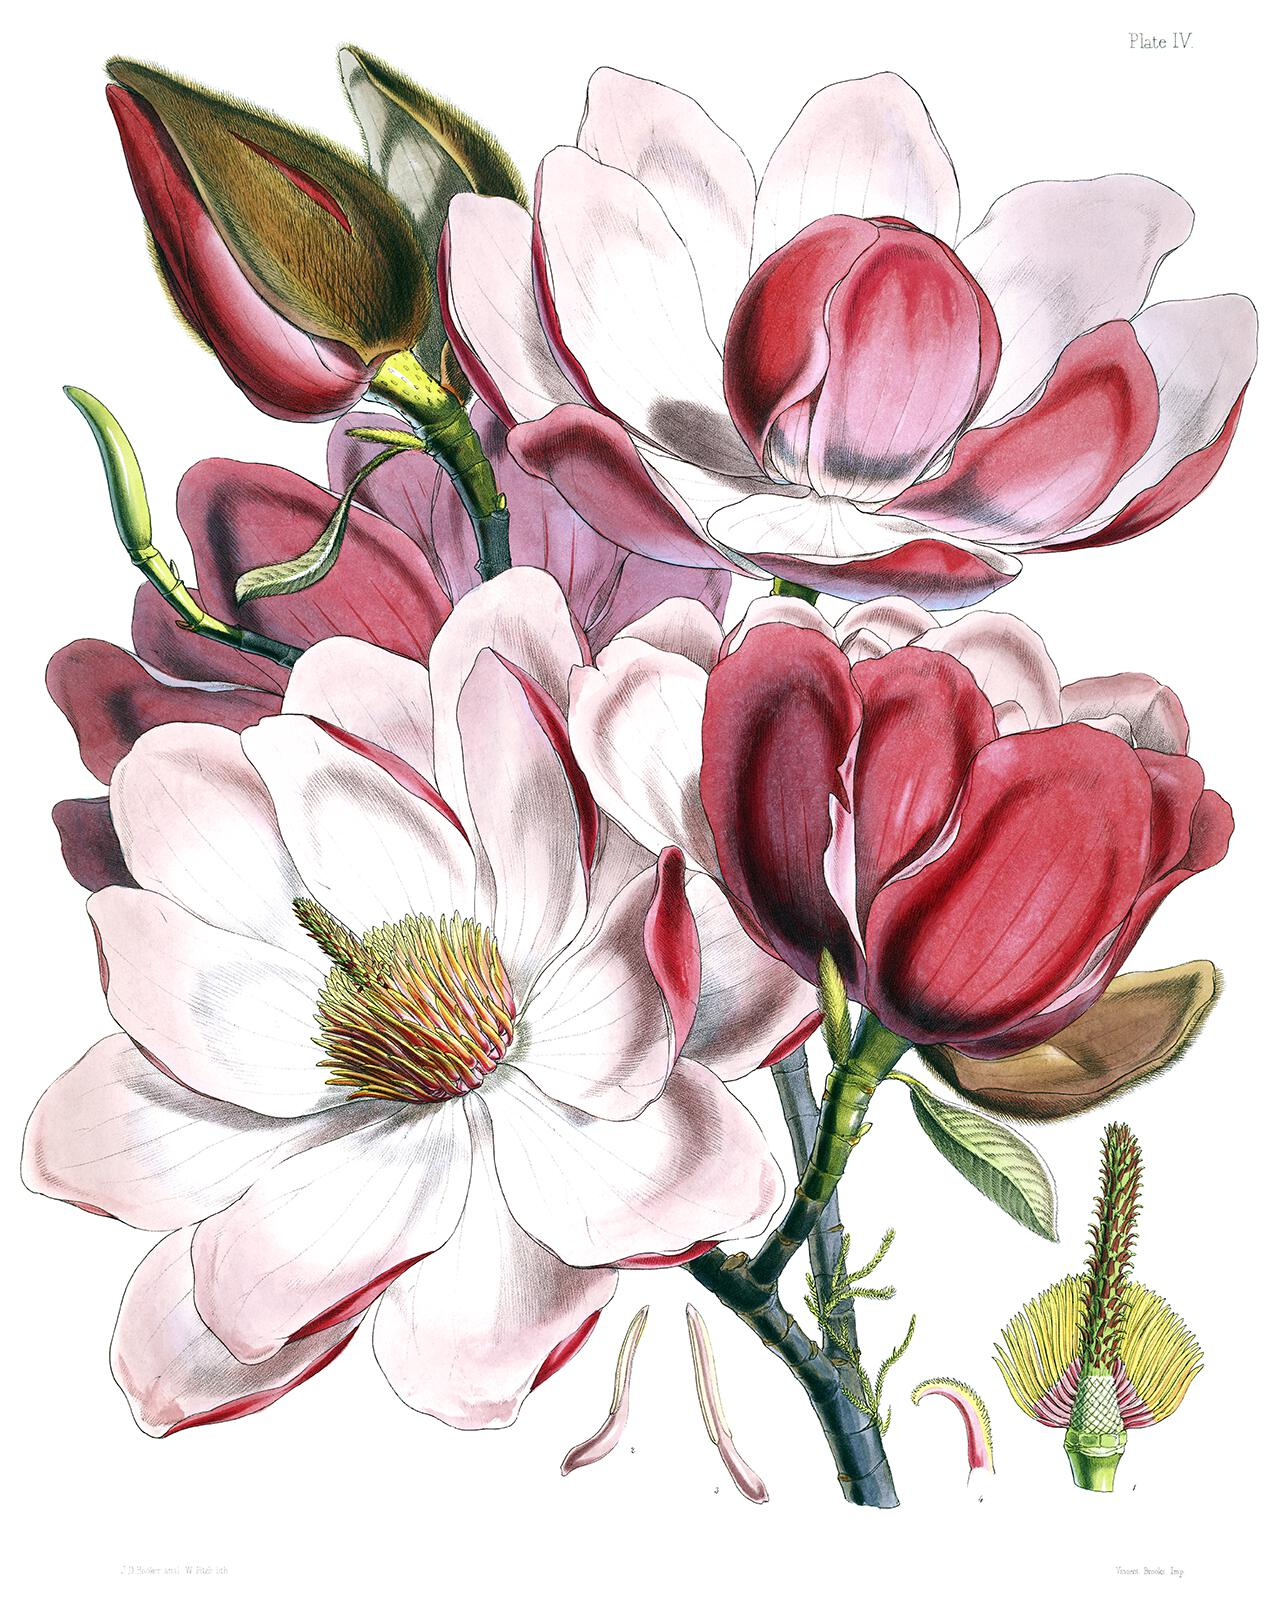 Magnolia Campbellii Old Book Illustrations